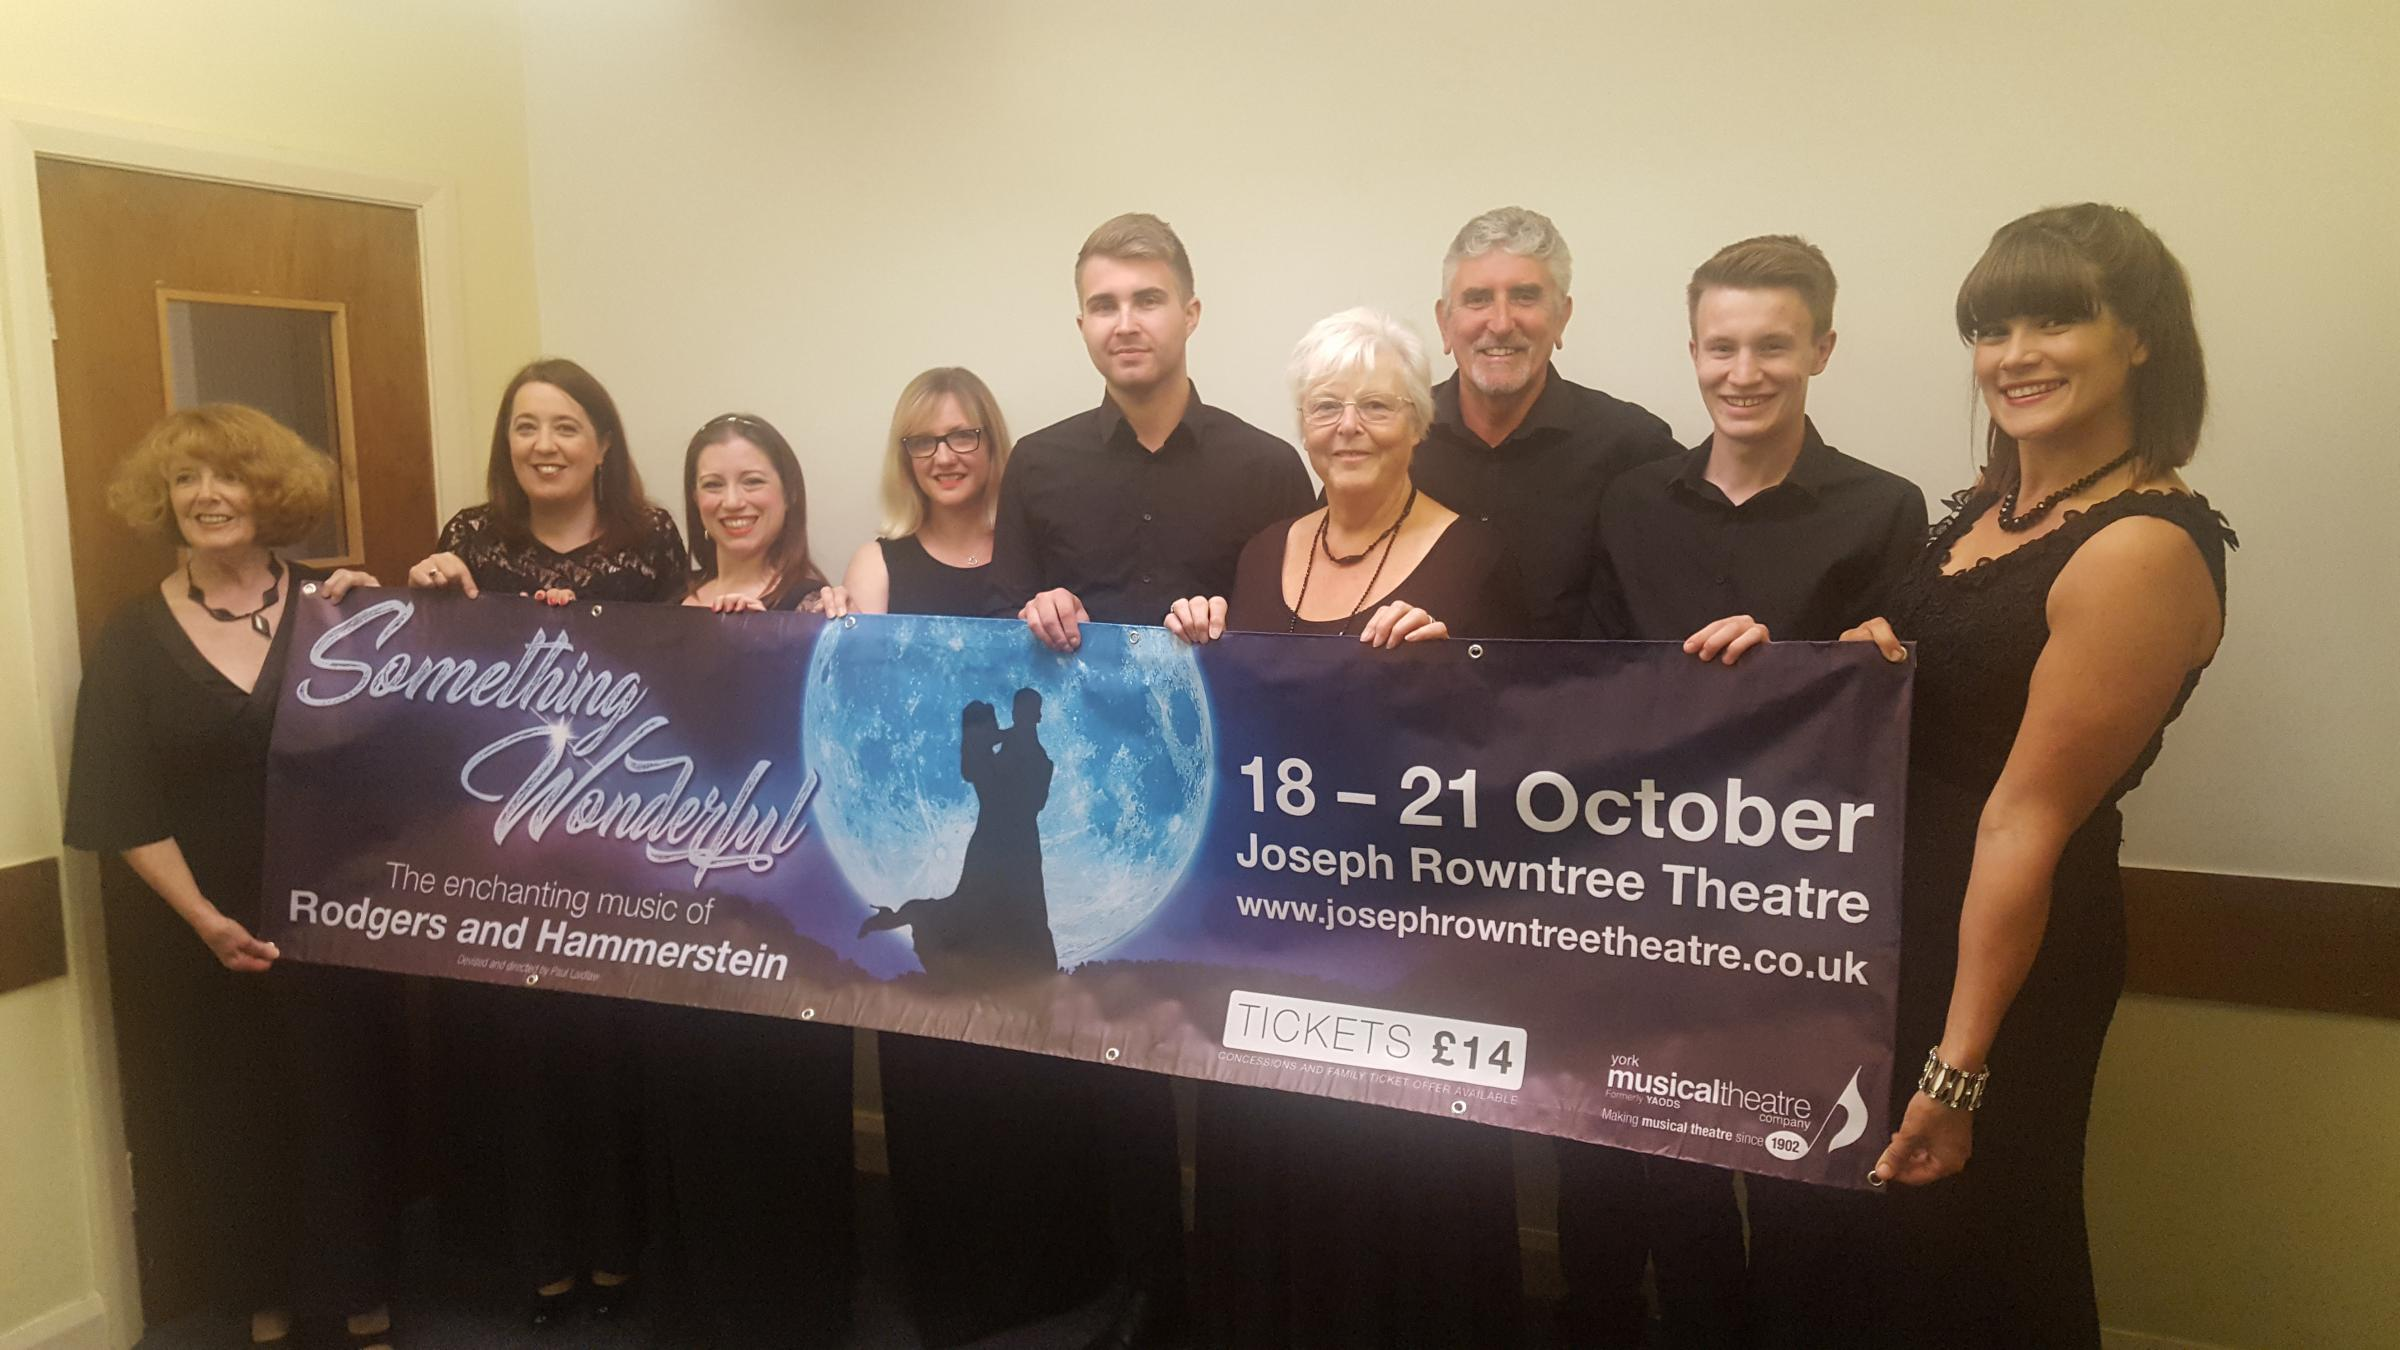 Something Wonderful cast members Jenny Cohen, left, Jane Holiday, Amy Lacy, Kathryn Addison, Matthew Ainsworth, Gill Baldwin, Larry Gibson, Sam Rippon and Kelly Derbyshire